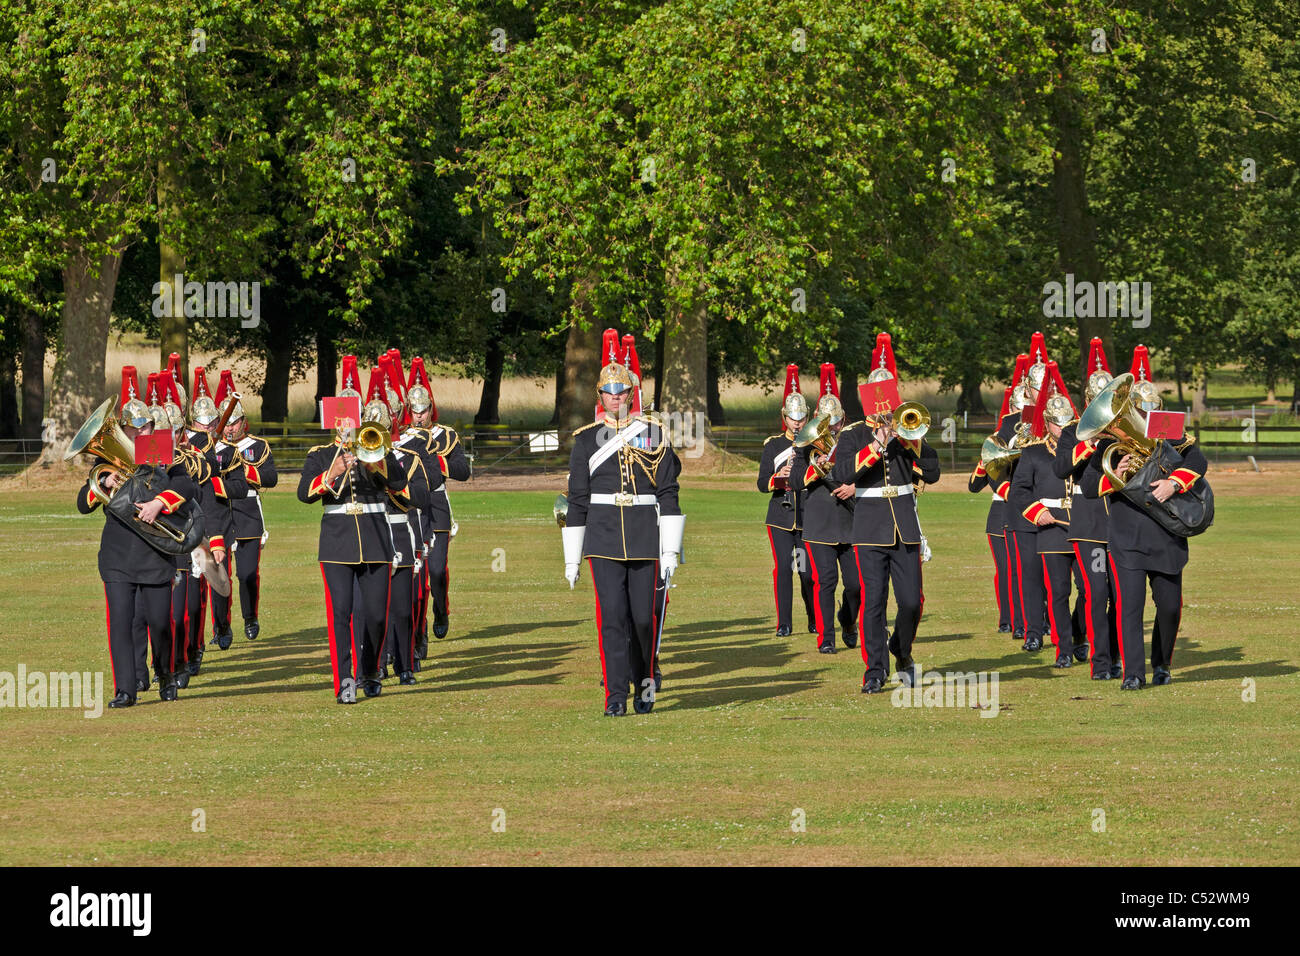 The military Band of the Blues and Royals playing and marching at a private royal function in Windsor Great Park. - Stock Image